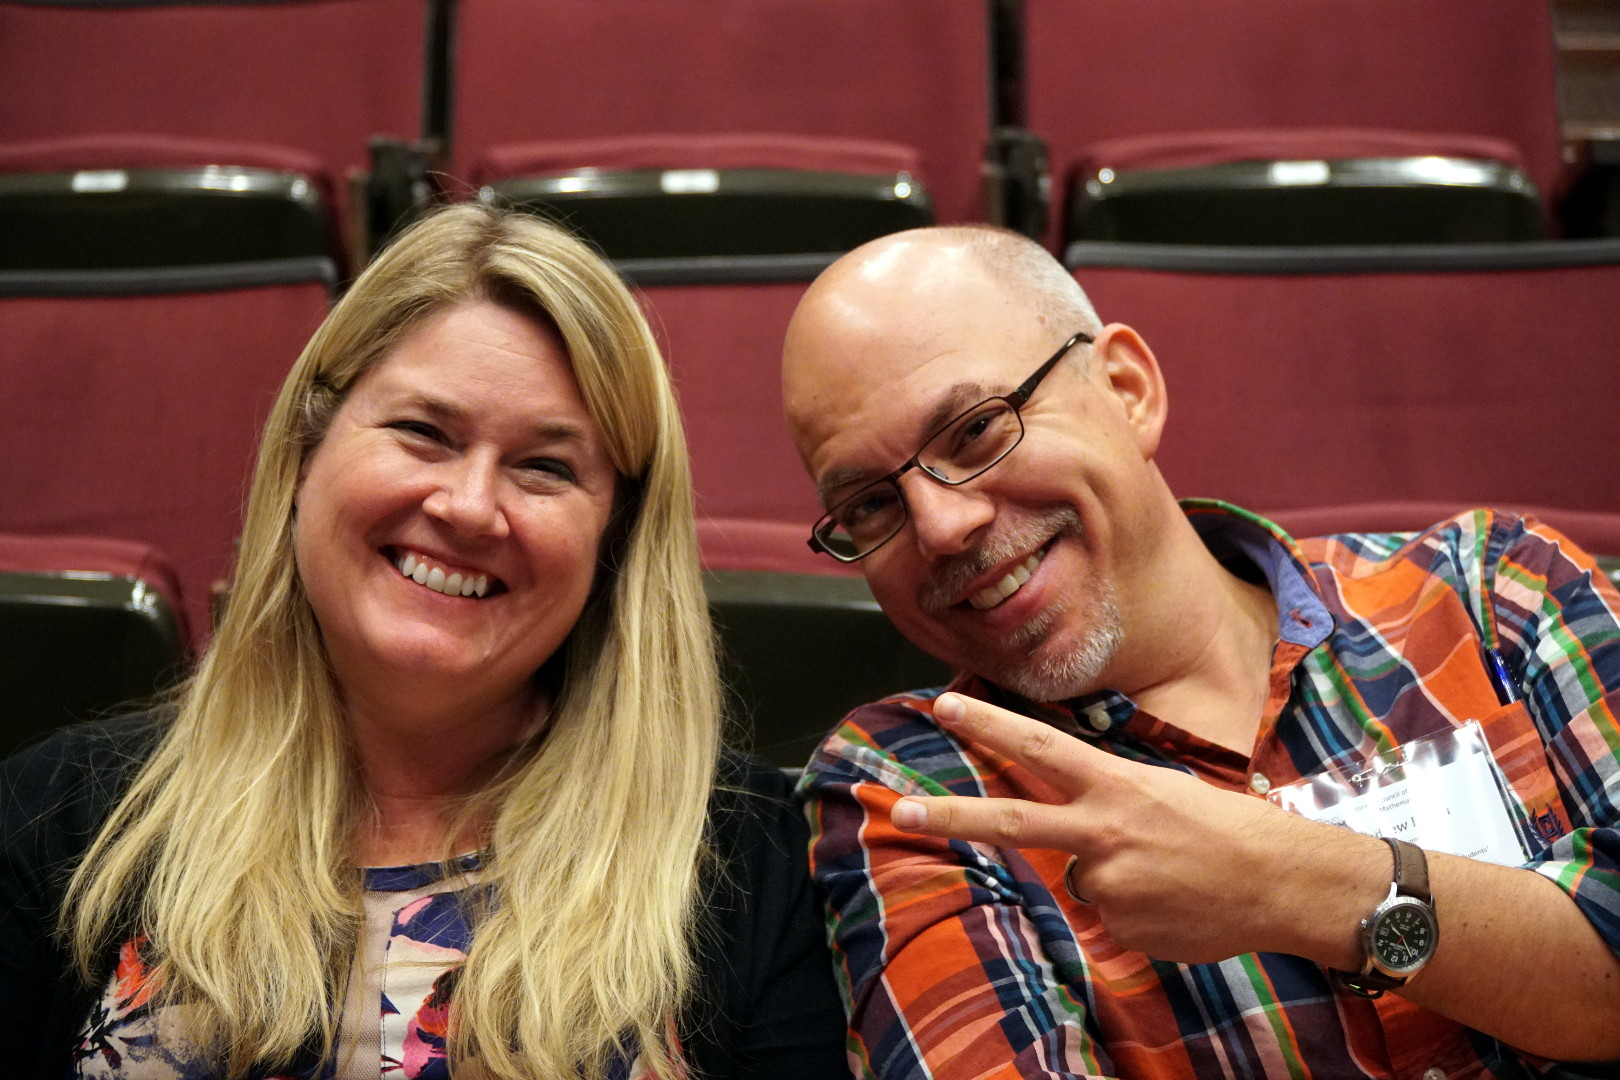 Amanda Jansen (@MandyMathEd) and Andrew Busch (@abusch38) are a #cctm17 power pair. (Amandrew?)